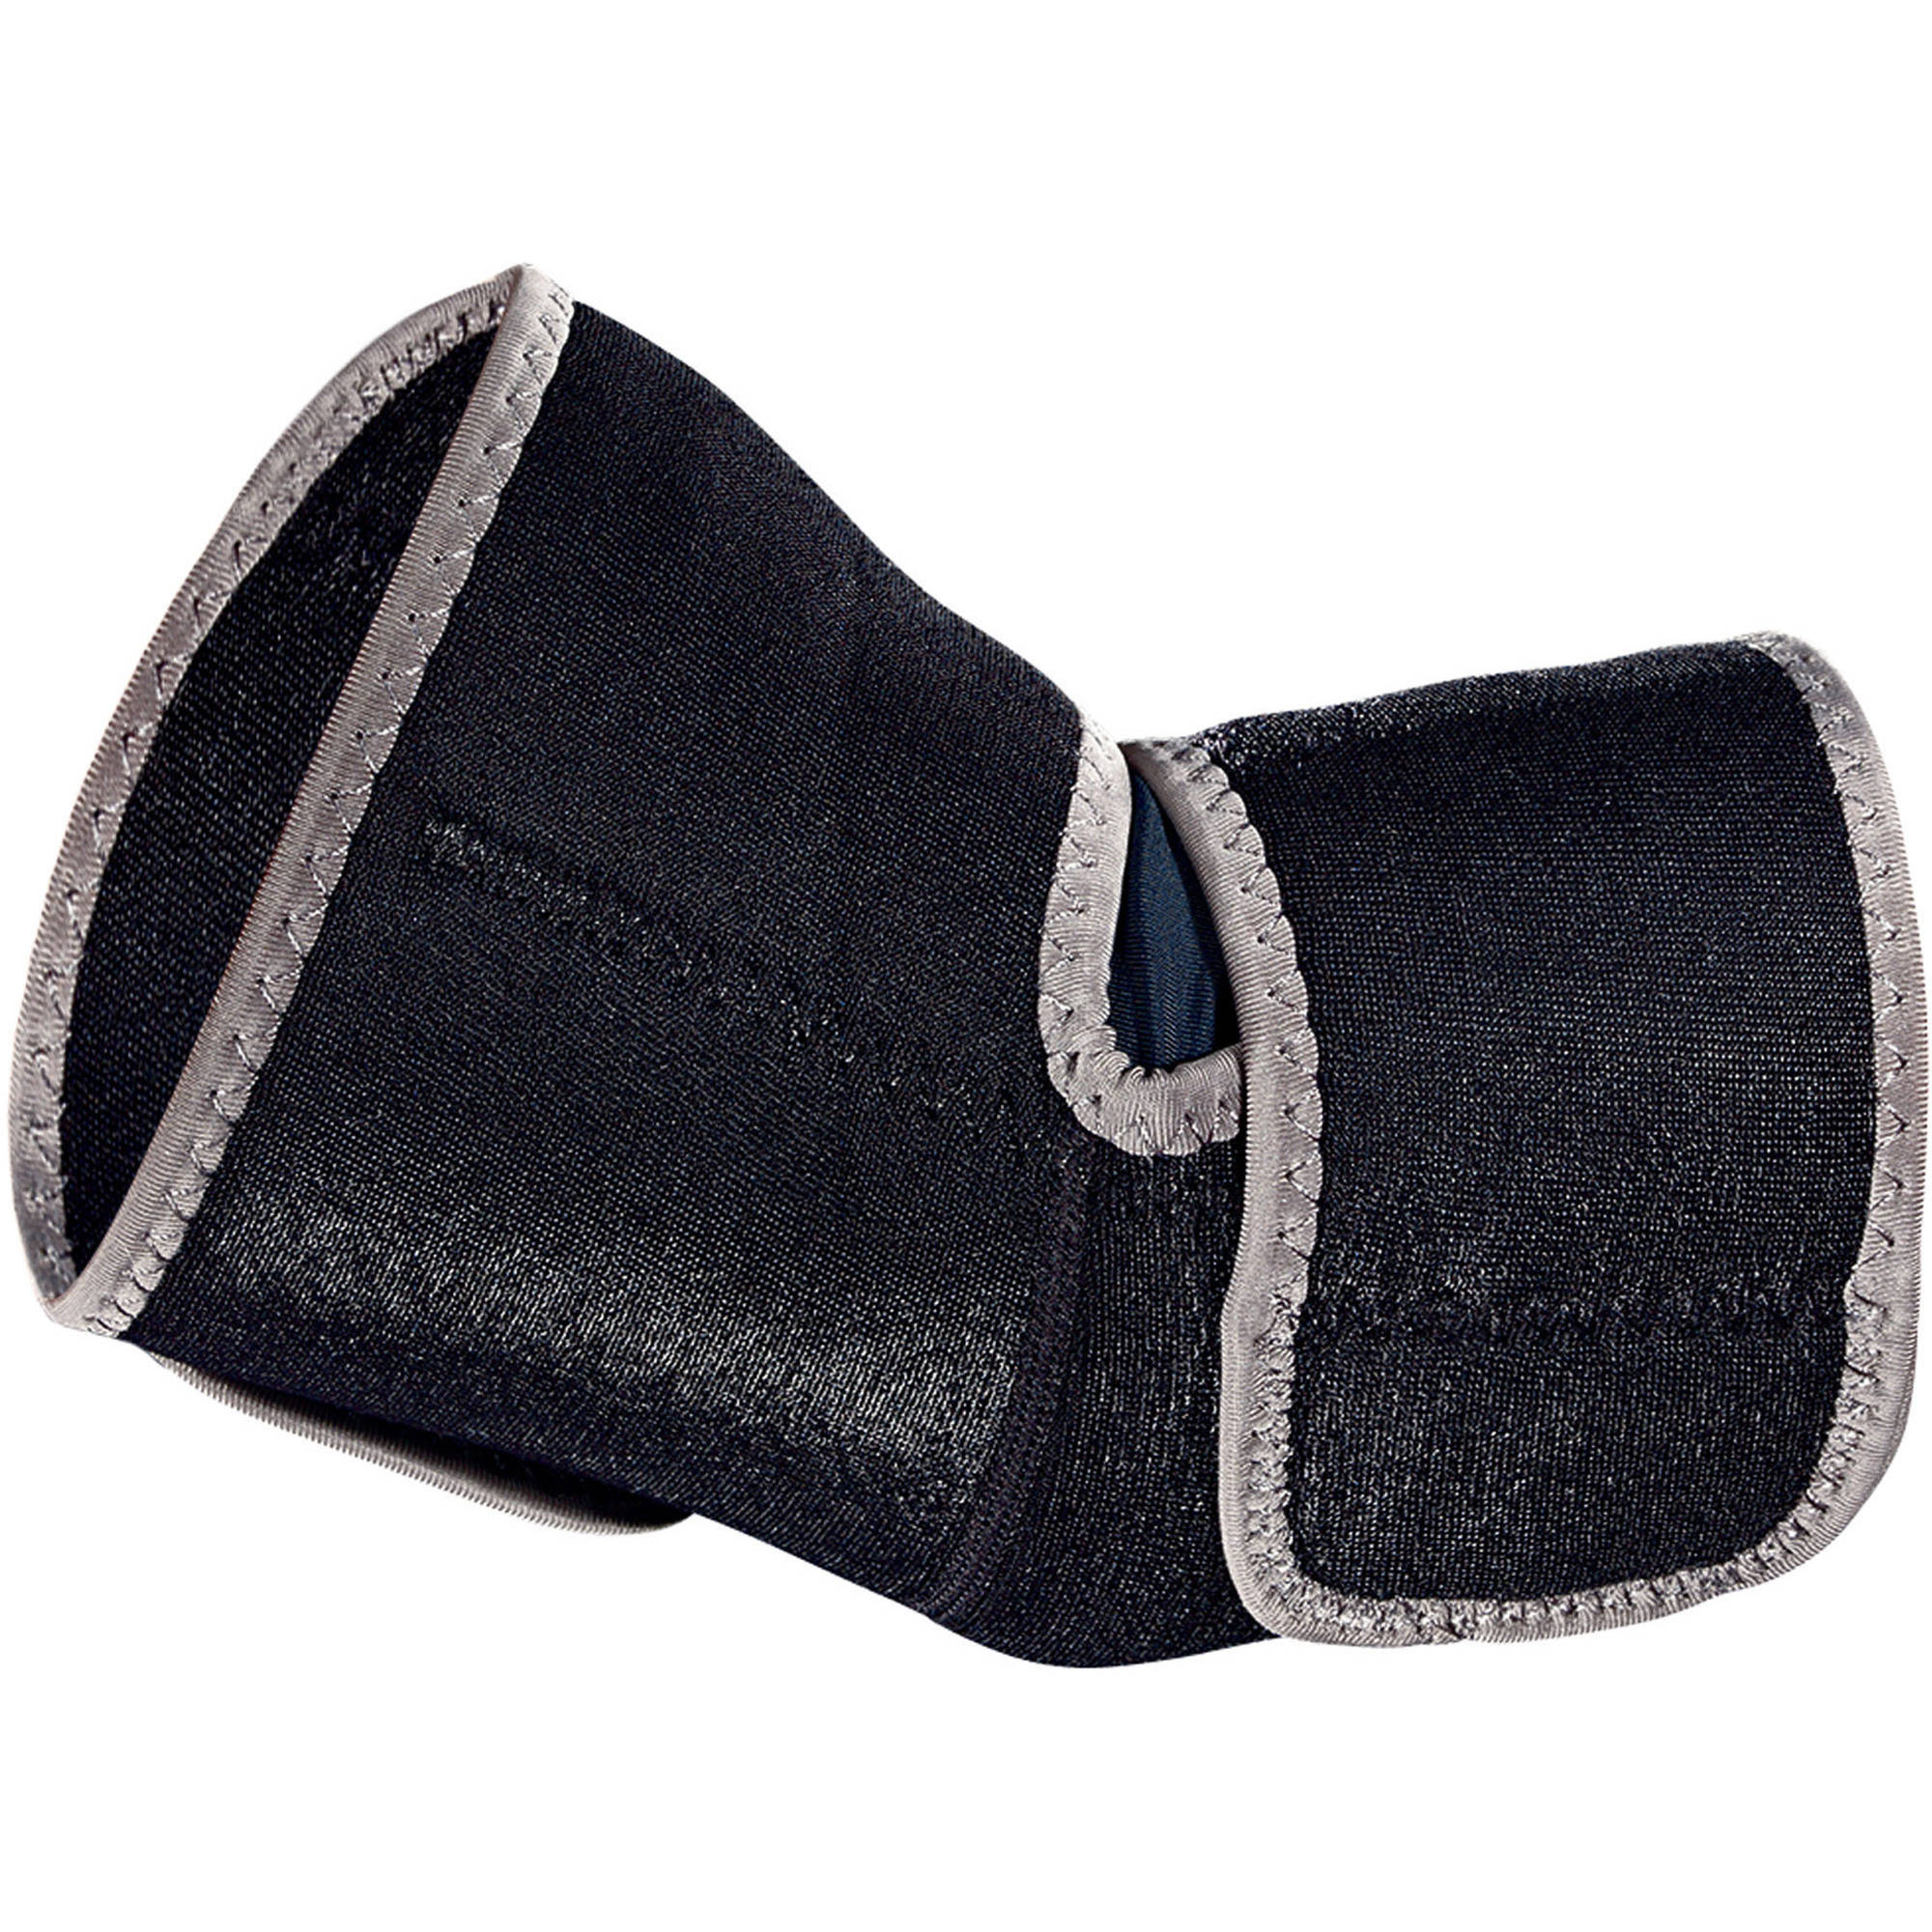 ACE Adjustable Elbow Support, 904004